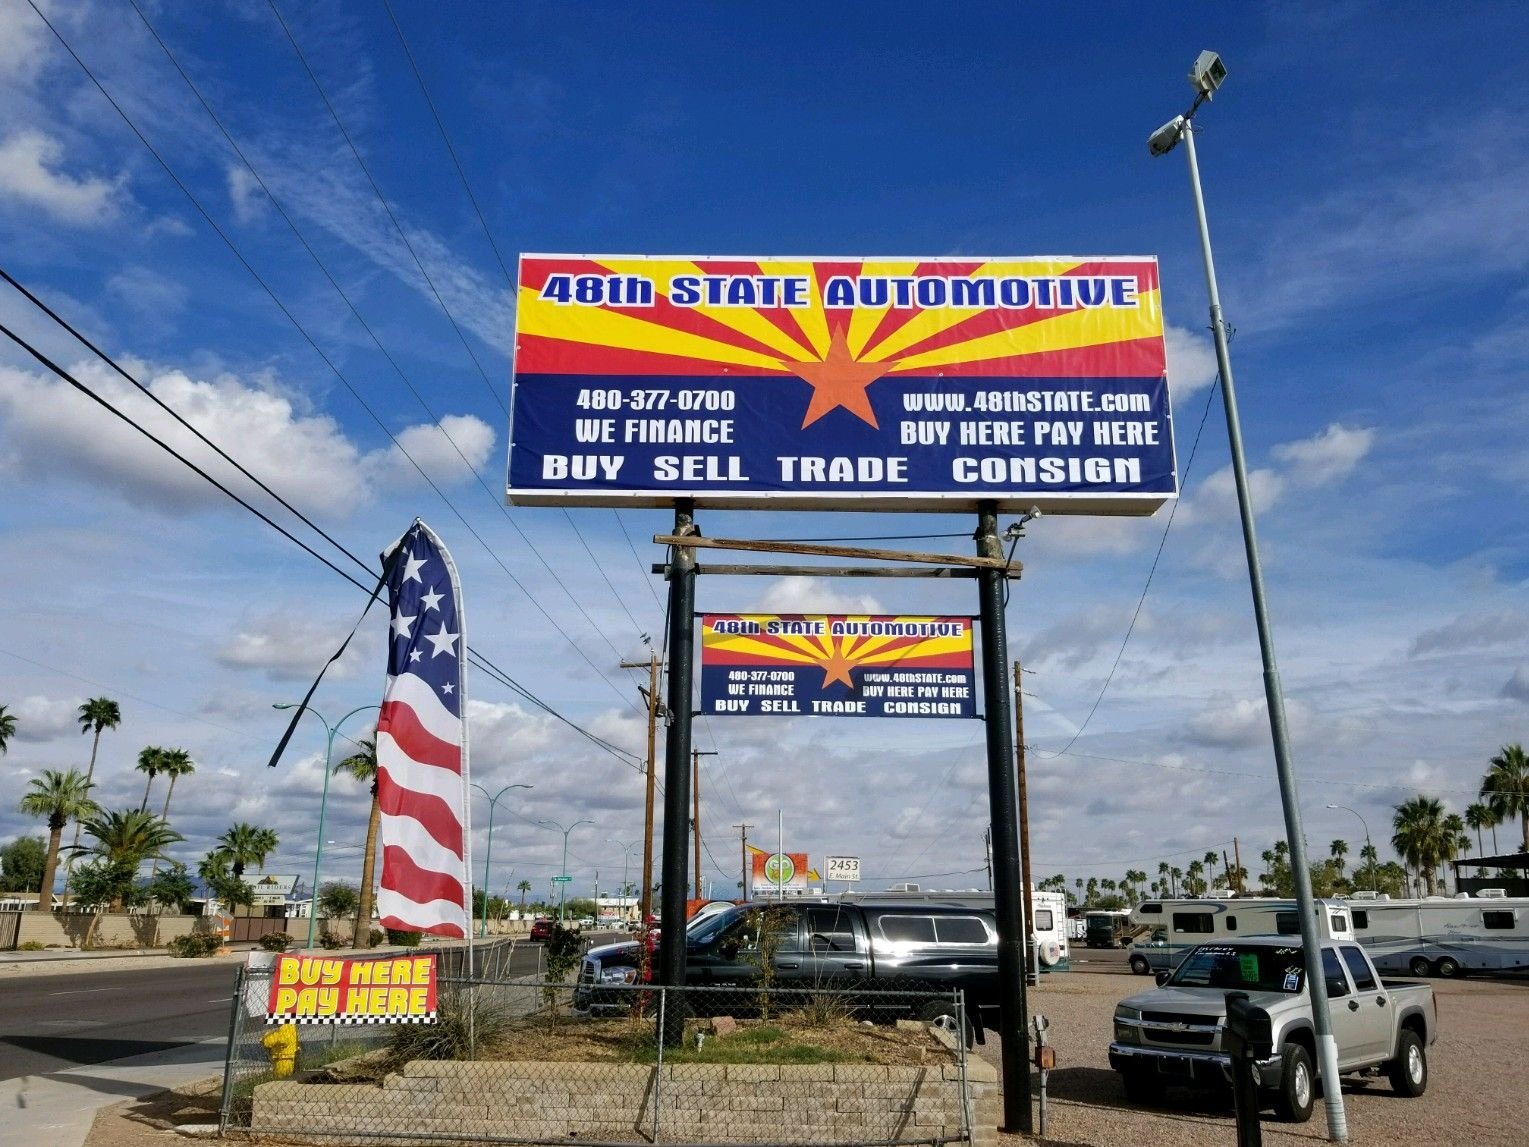 Used Cars Mesa Az >> 48th State Automotive - Mesa, AZ: Read Consumer reviews, Browse Used and New Cars for Sale